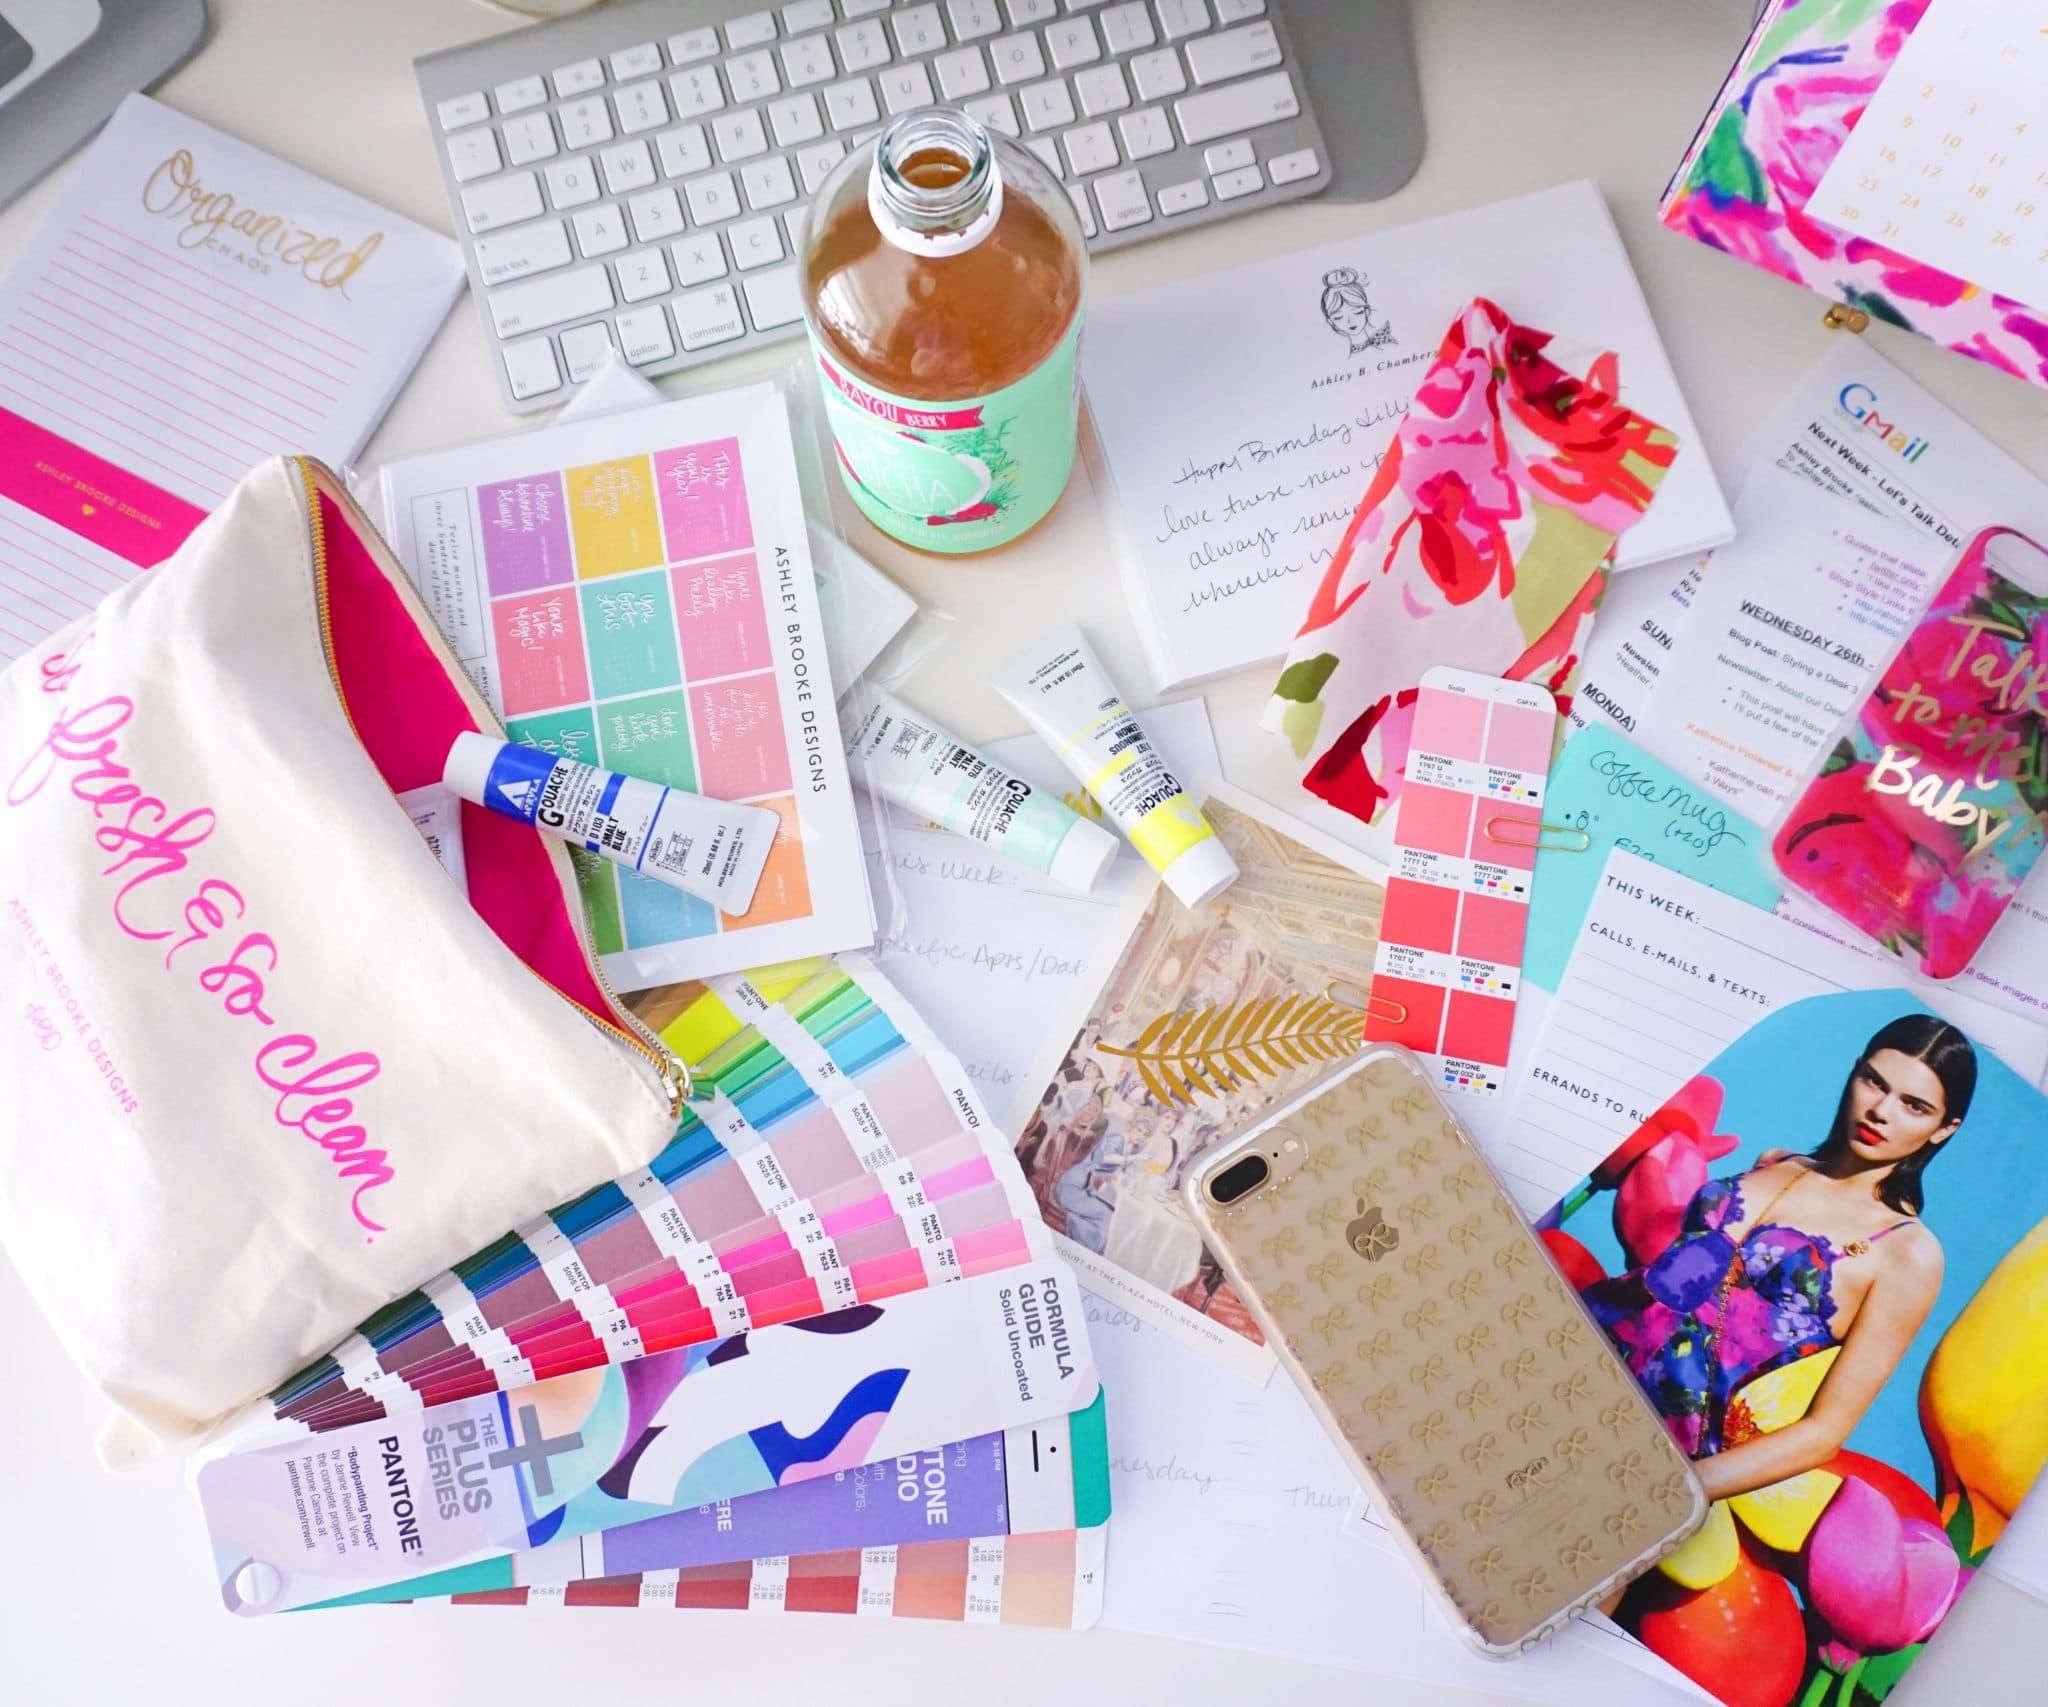 What's next at Ashley Brooke Designs? Go behind the scenes with us! | www.ashleybrookedesigns.com